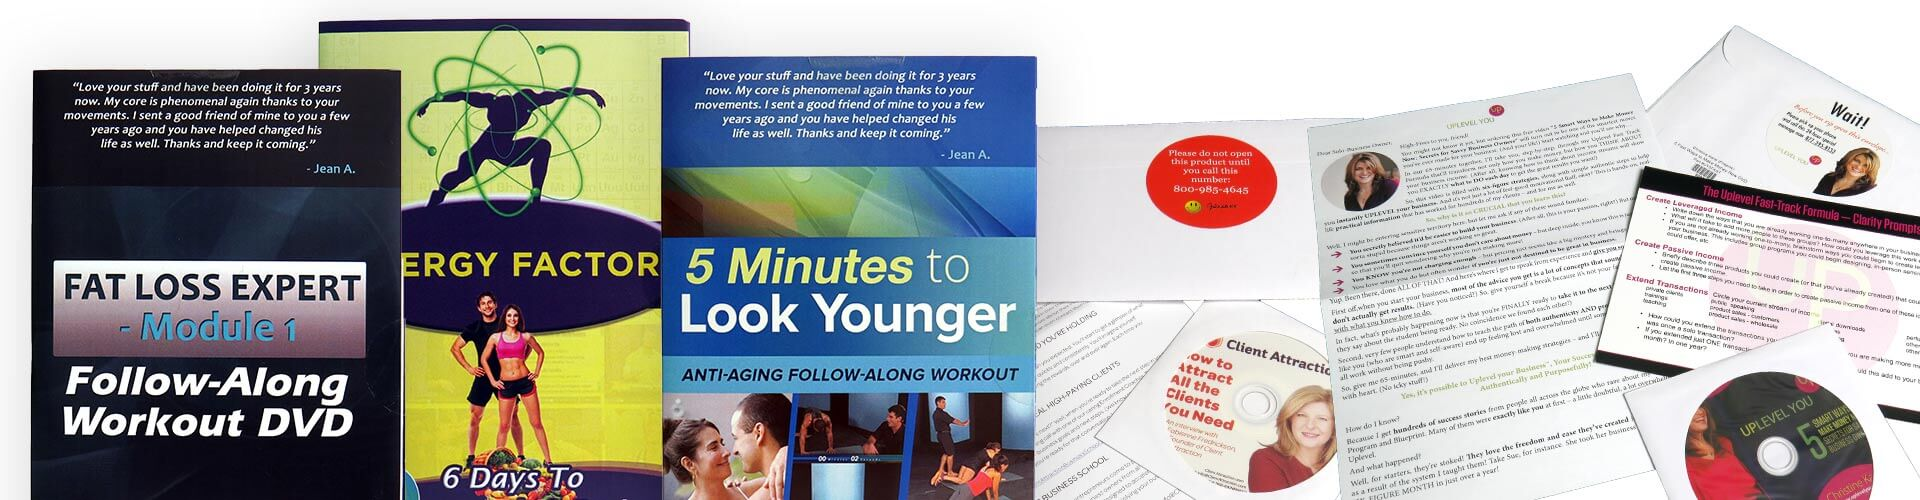 Direct Mail Printing and Packaging Services by Corporate Disk Company